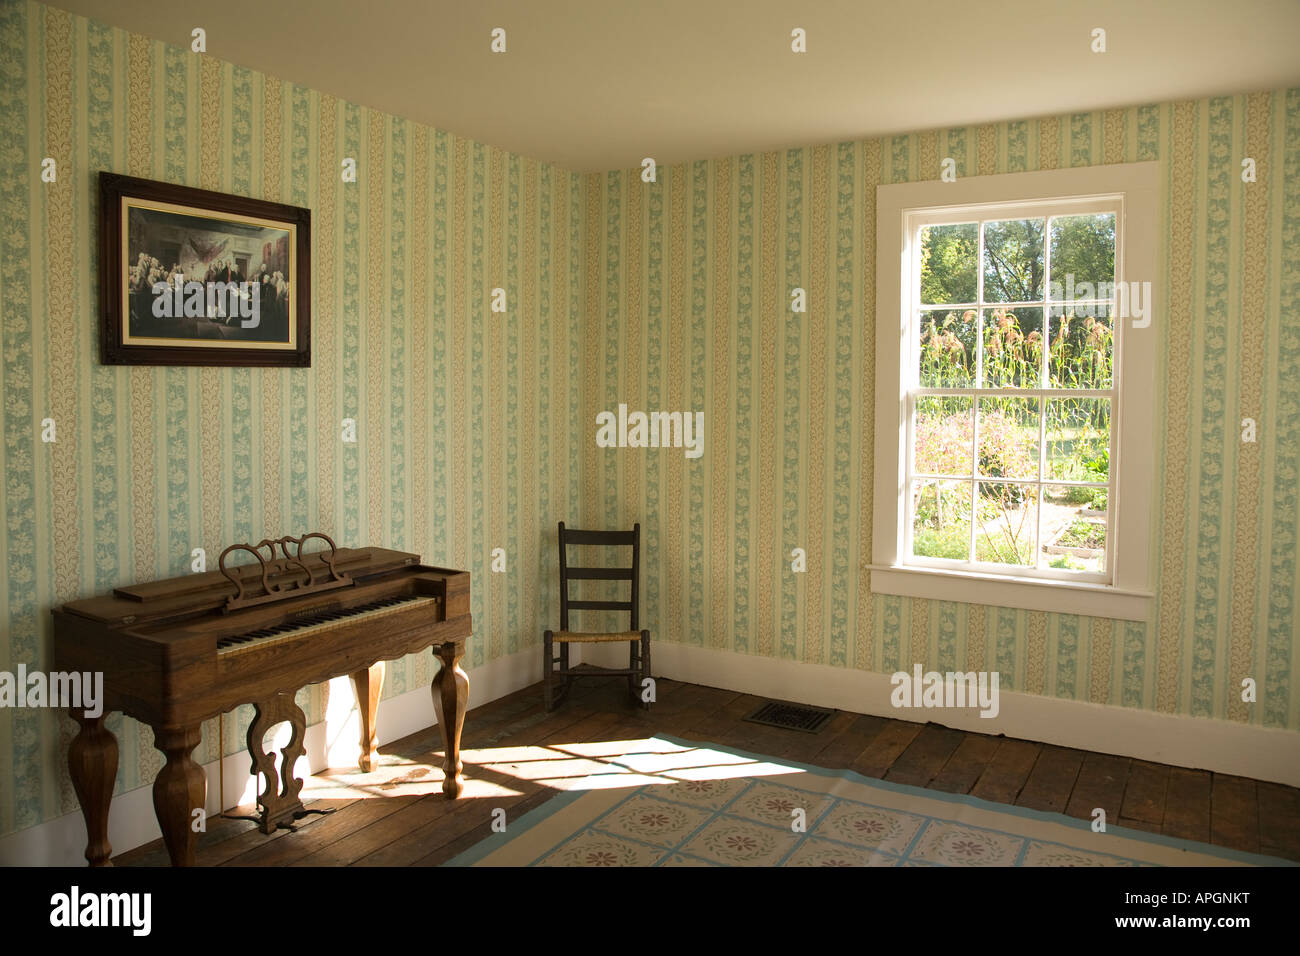 Illinois Rockford Interior Of Home From 1800s Furniture And Chair Stock Photo Royalty Free